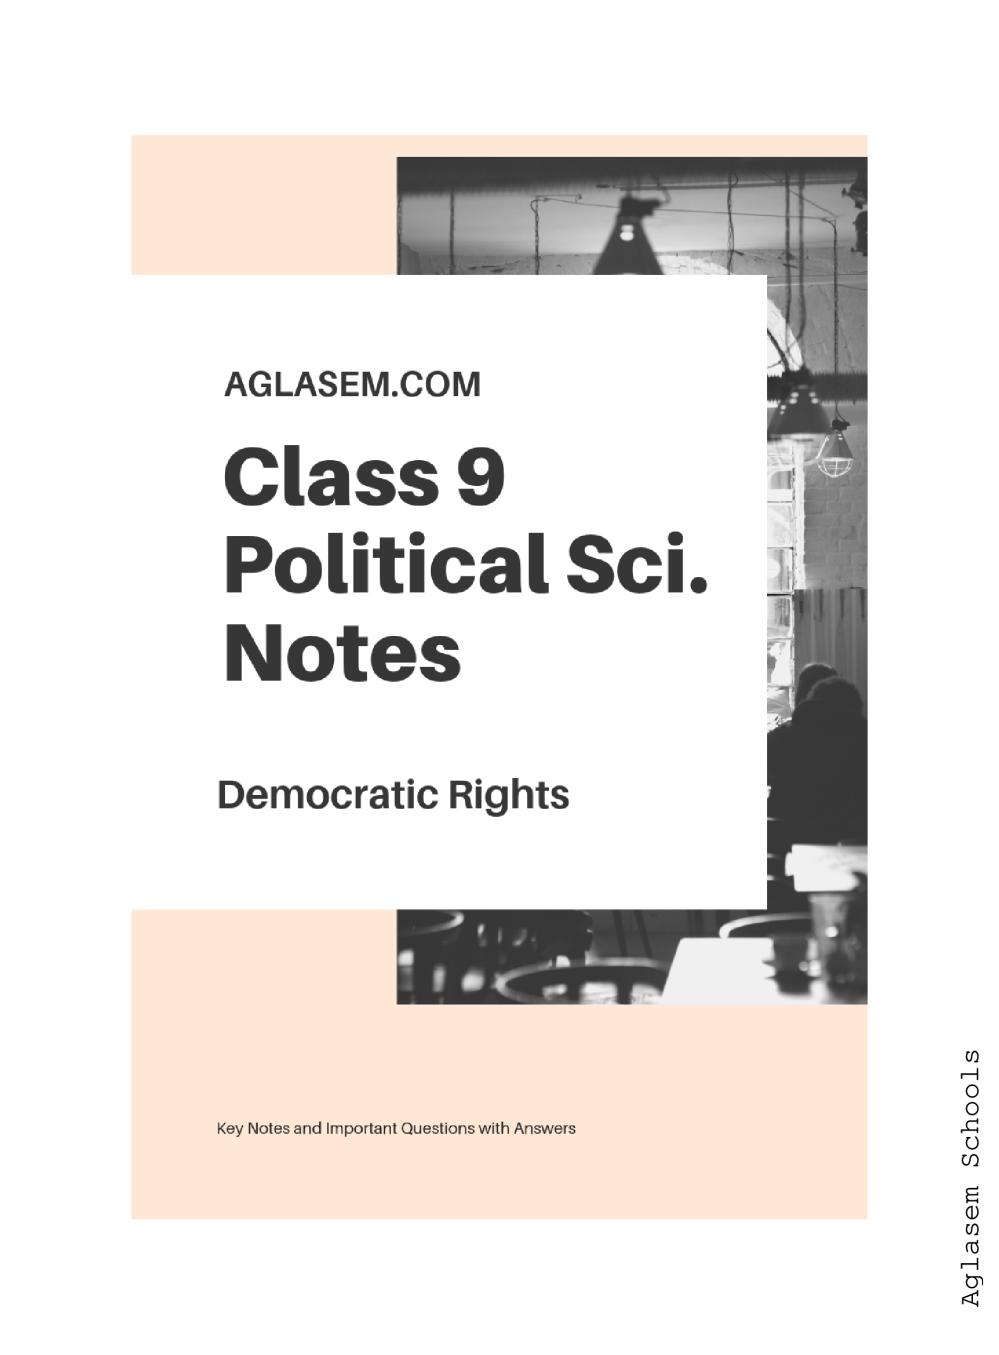 Class 9 Social Science (Political Science / Civics) Democratic Rights Notes, Important Questions & Practice Paper